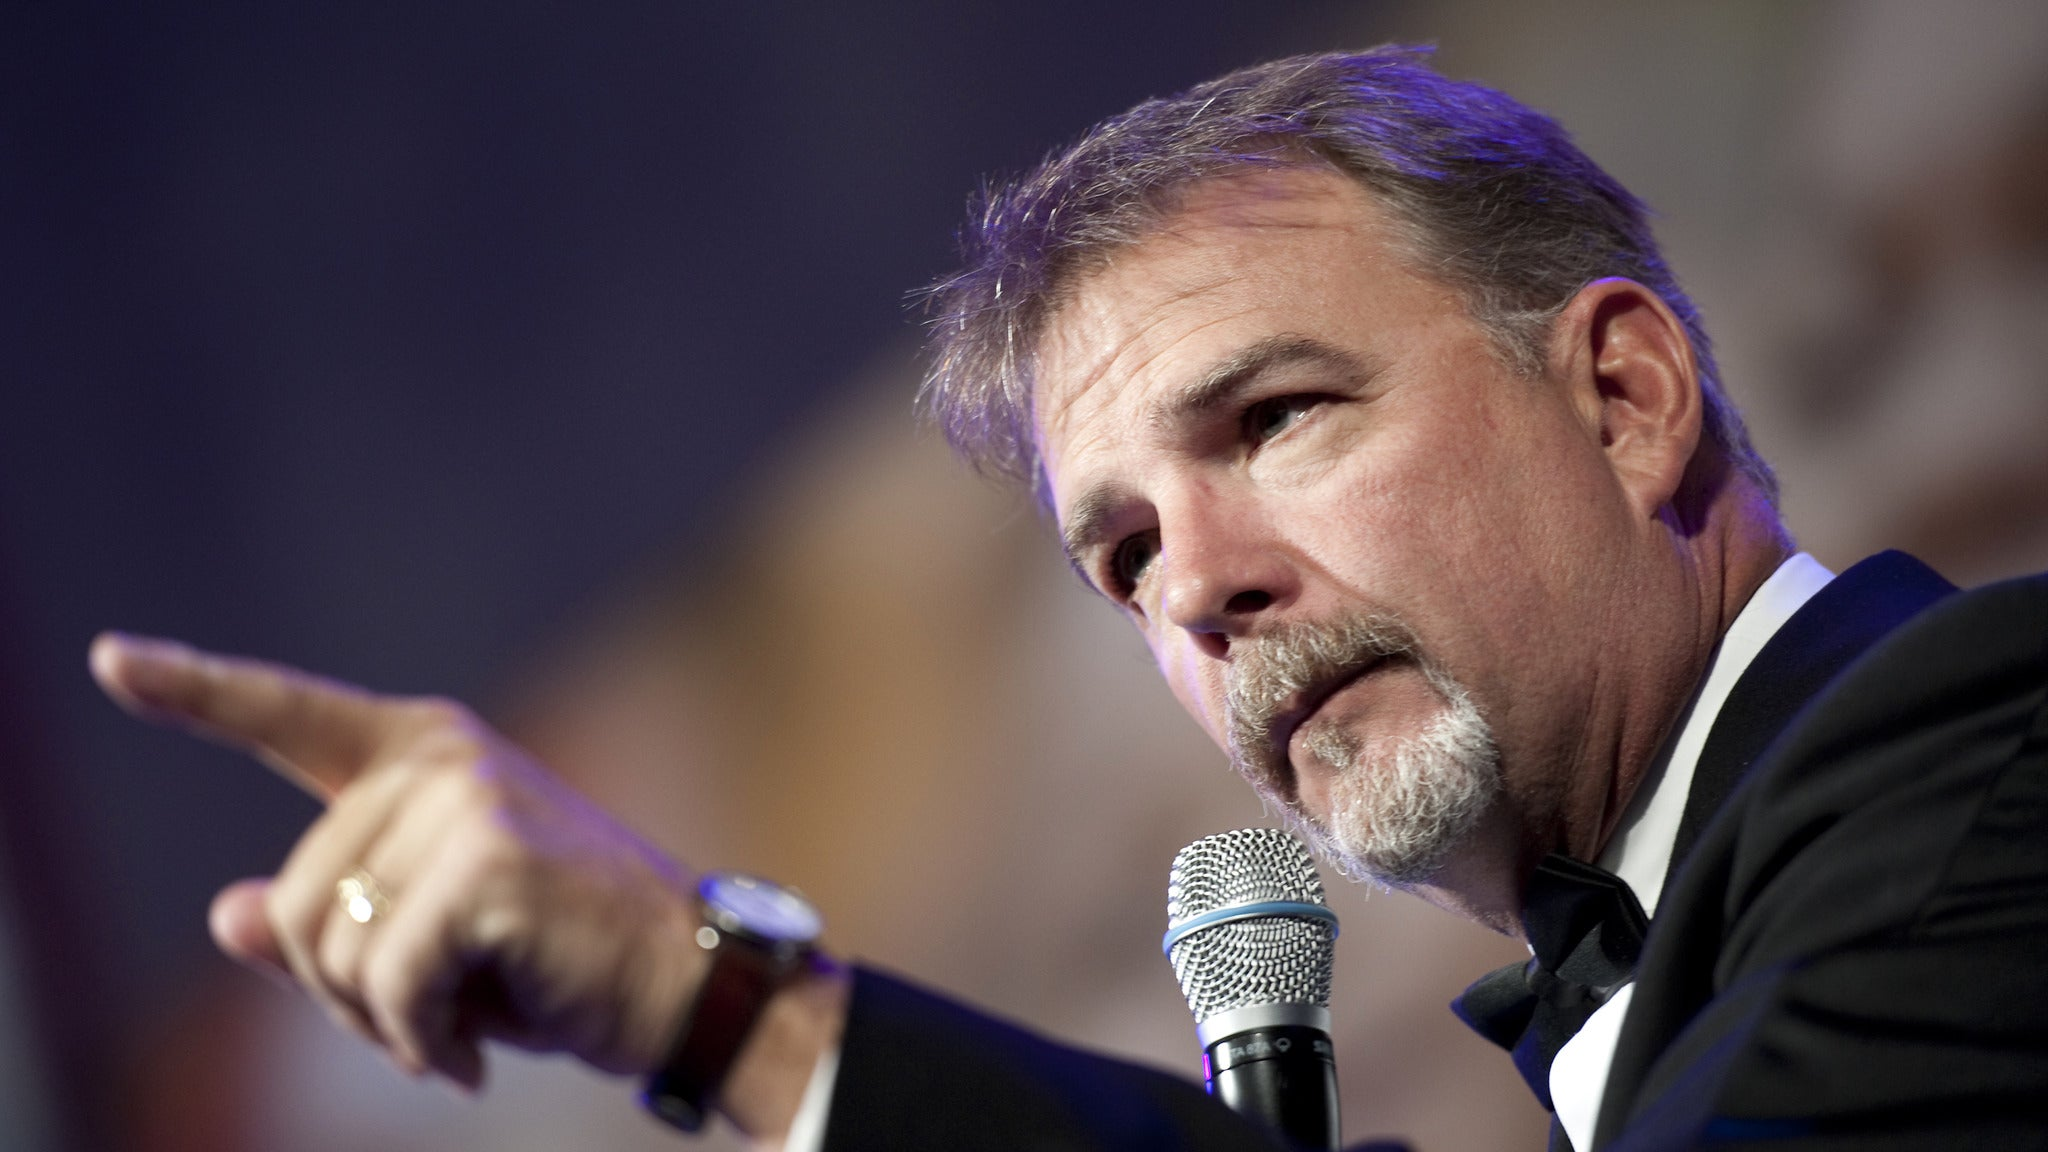 Bill Engvall at Peoria Civic Center